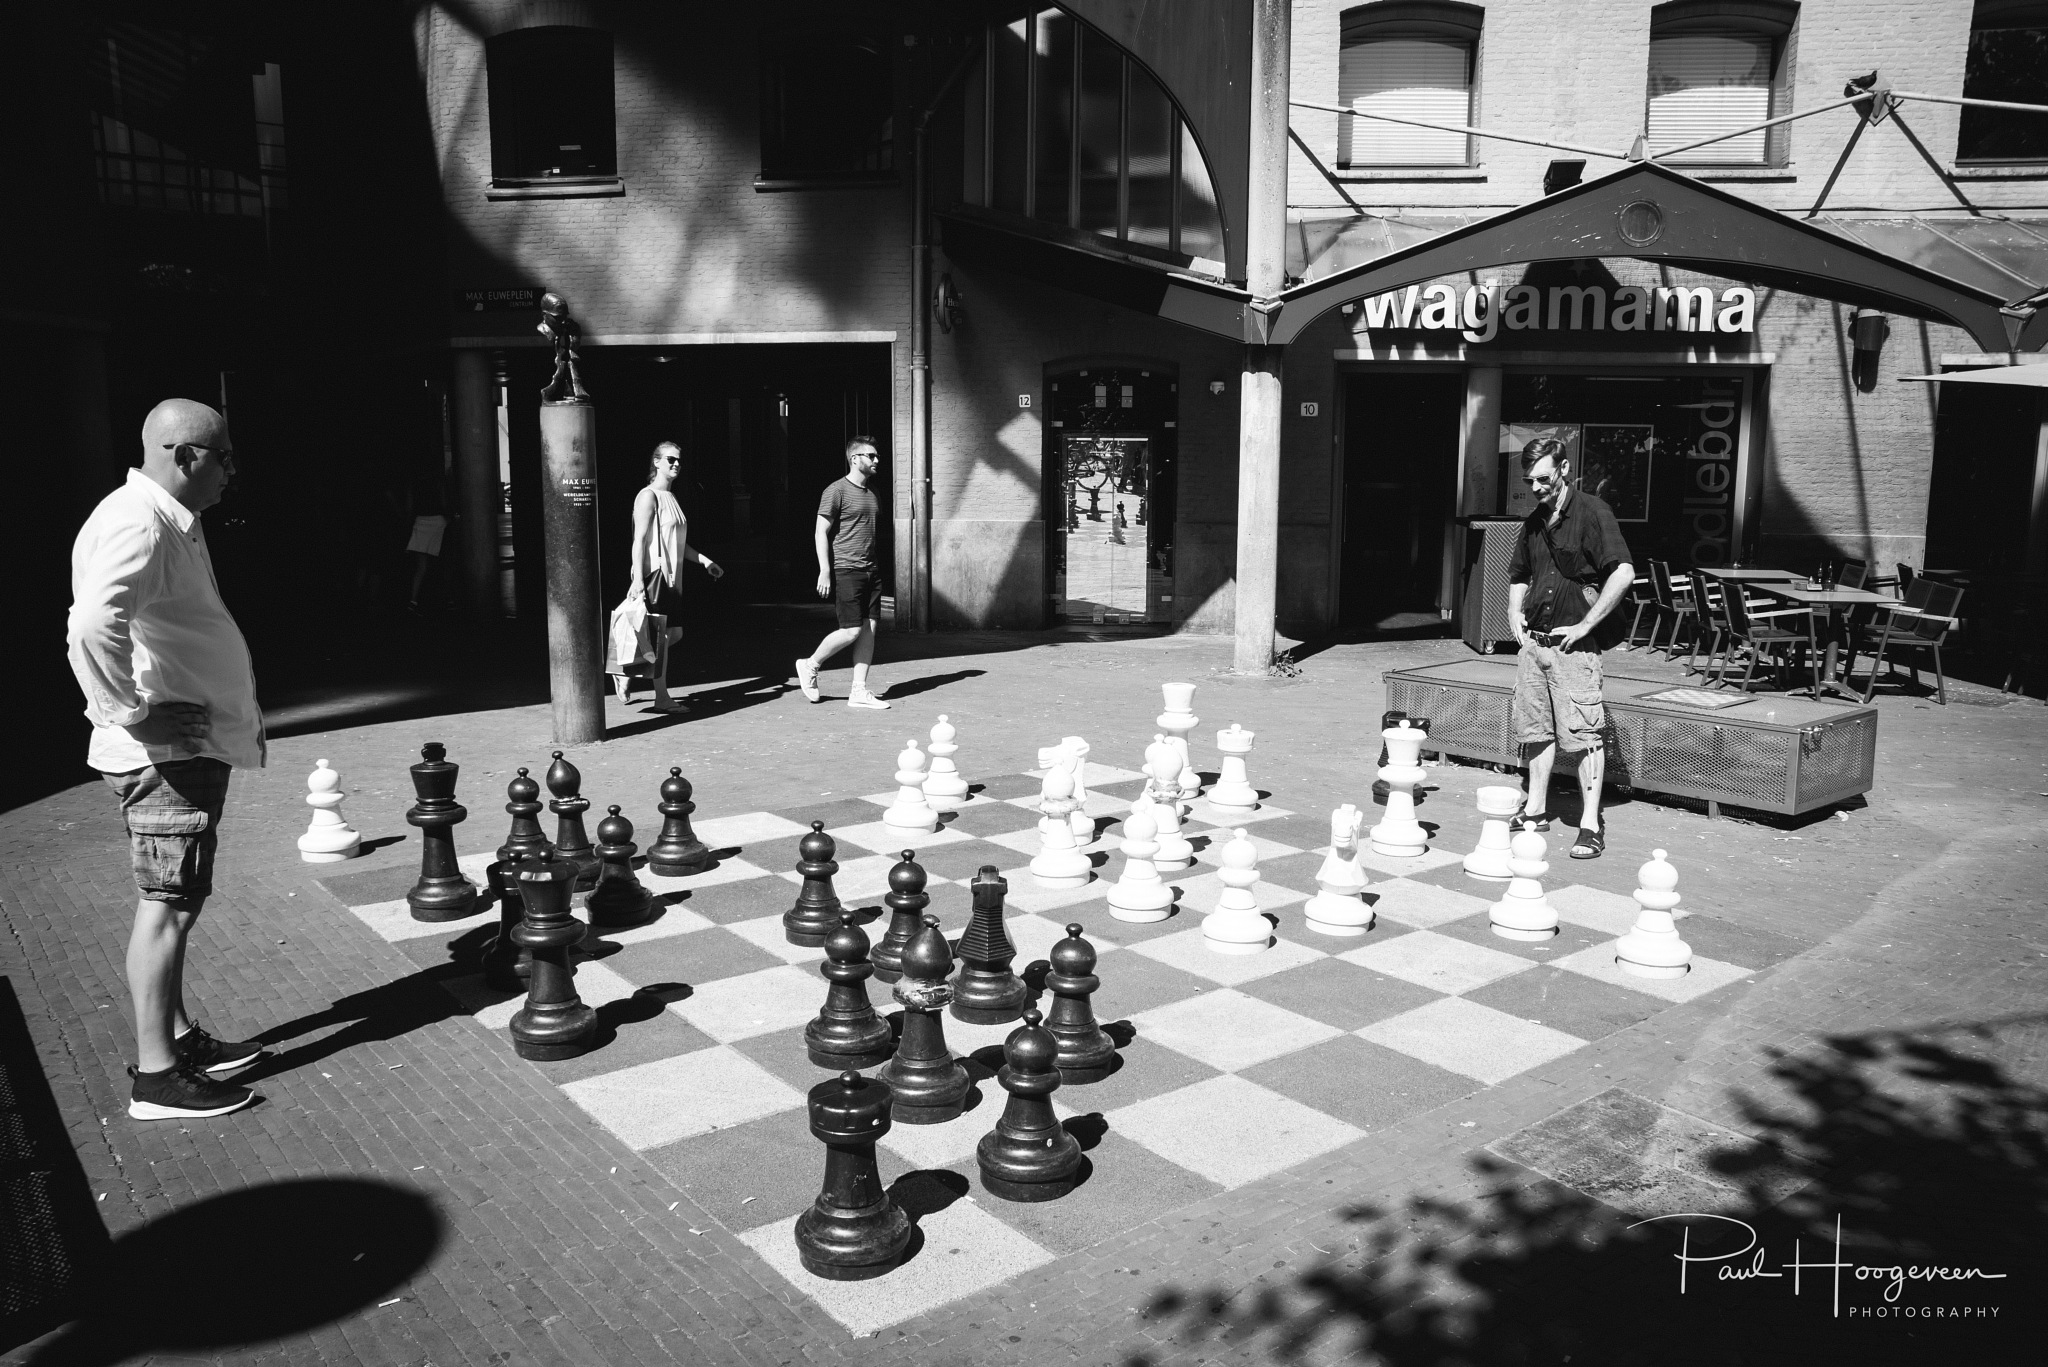 A game of chess by Paul Hoogeveen Photography